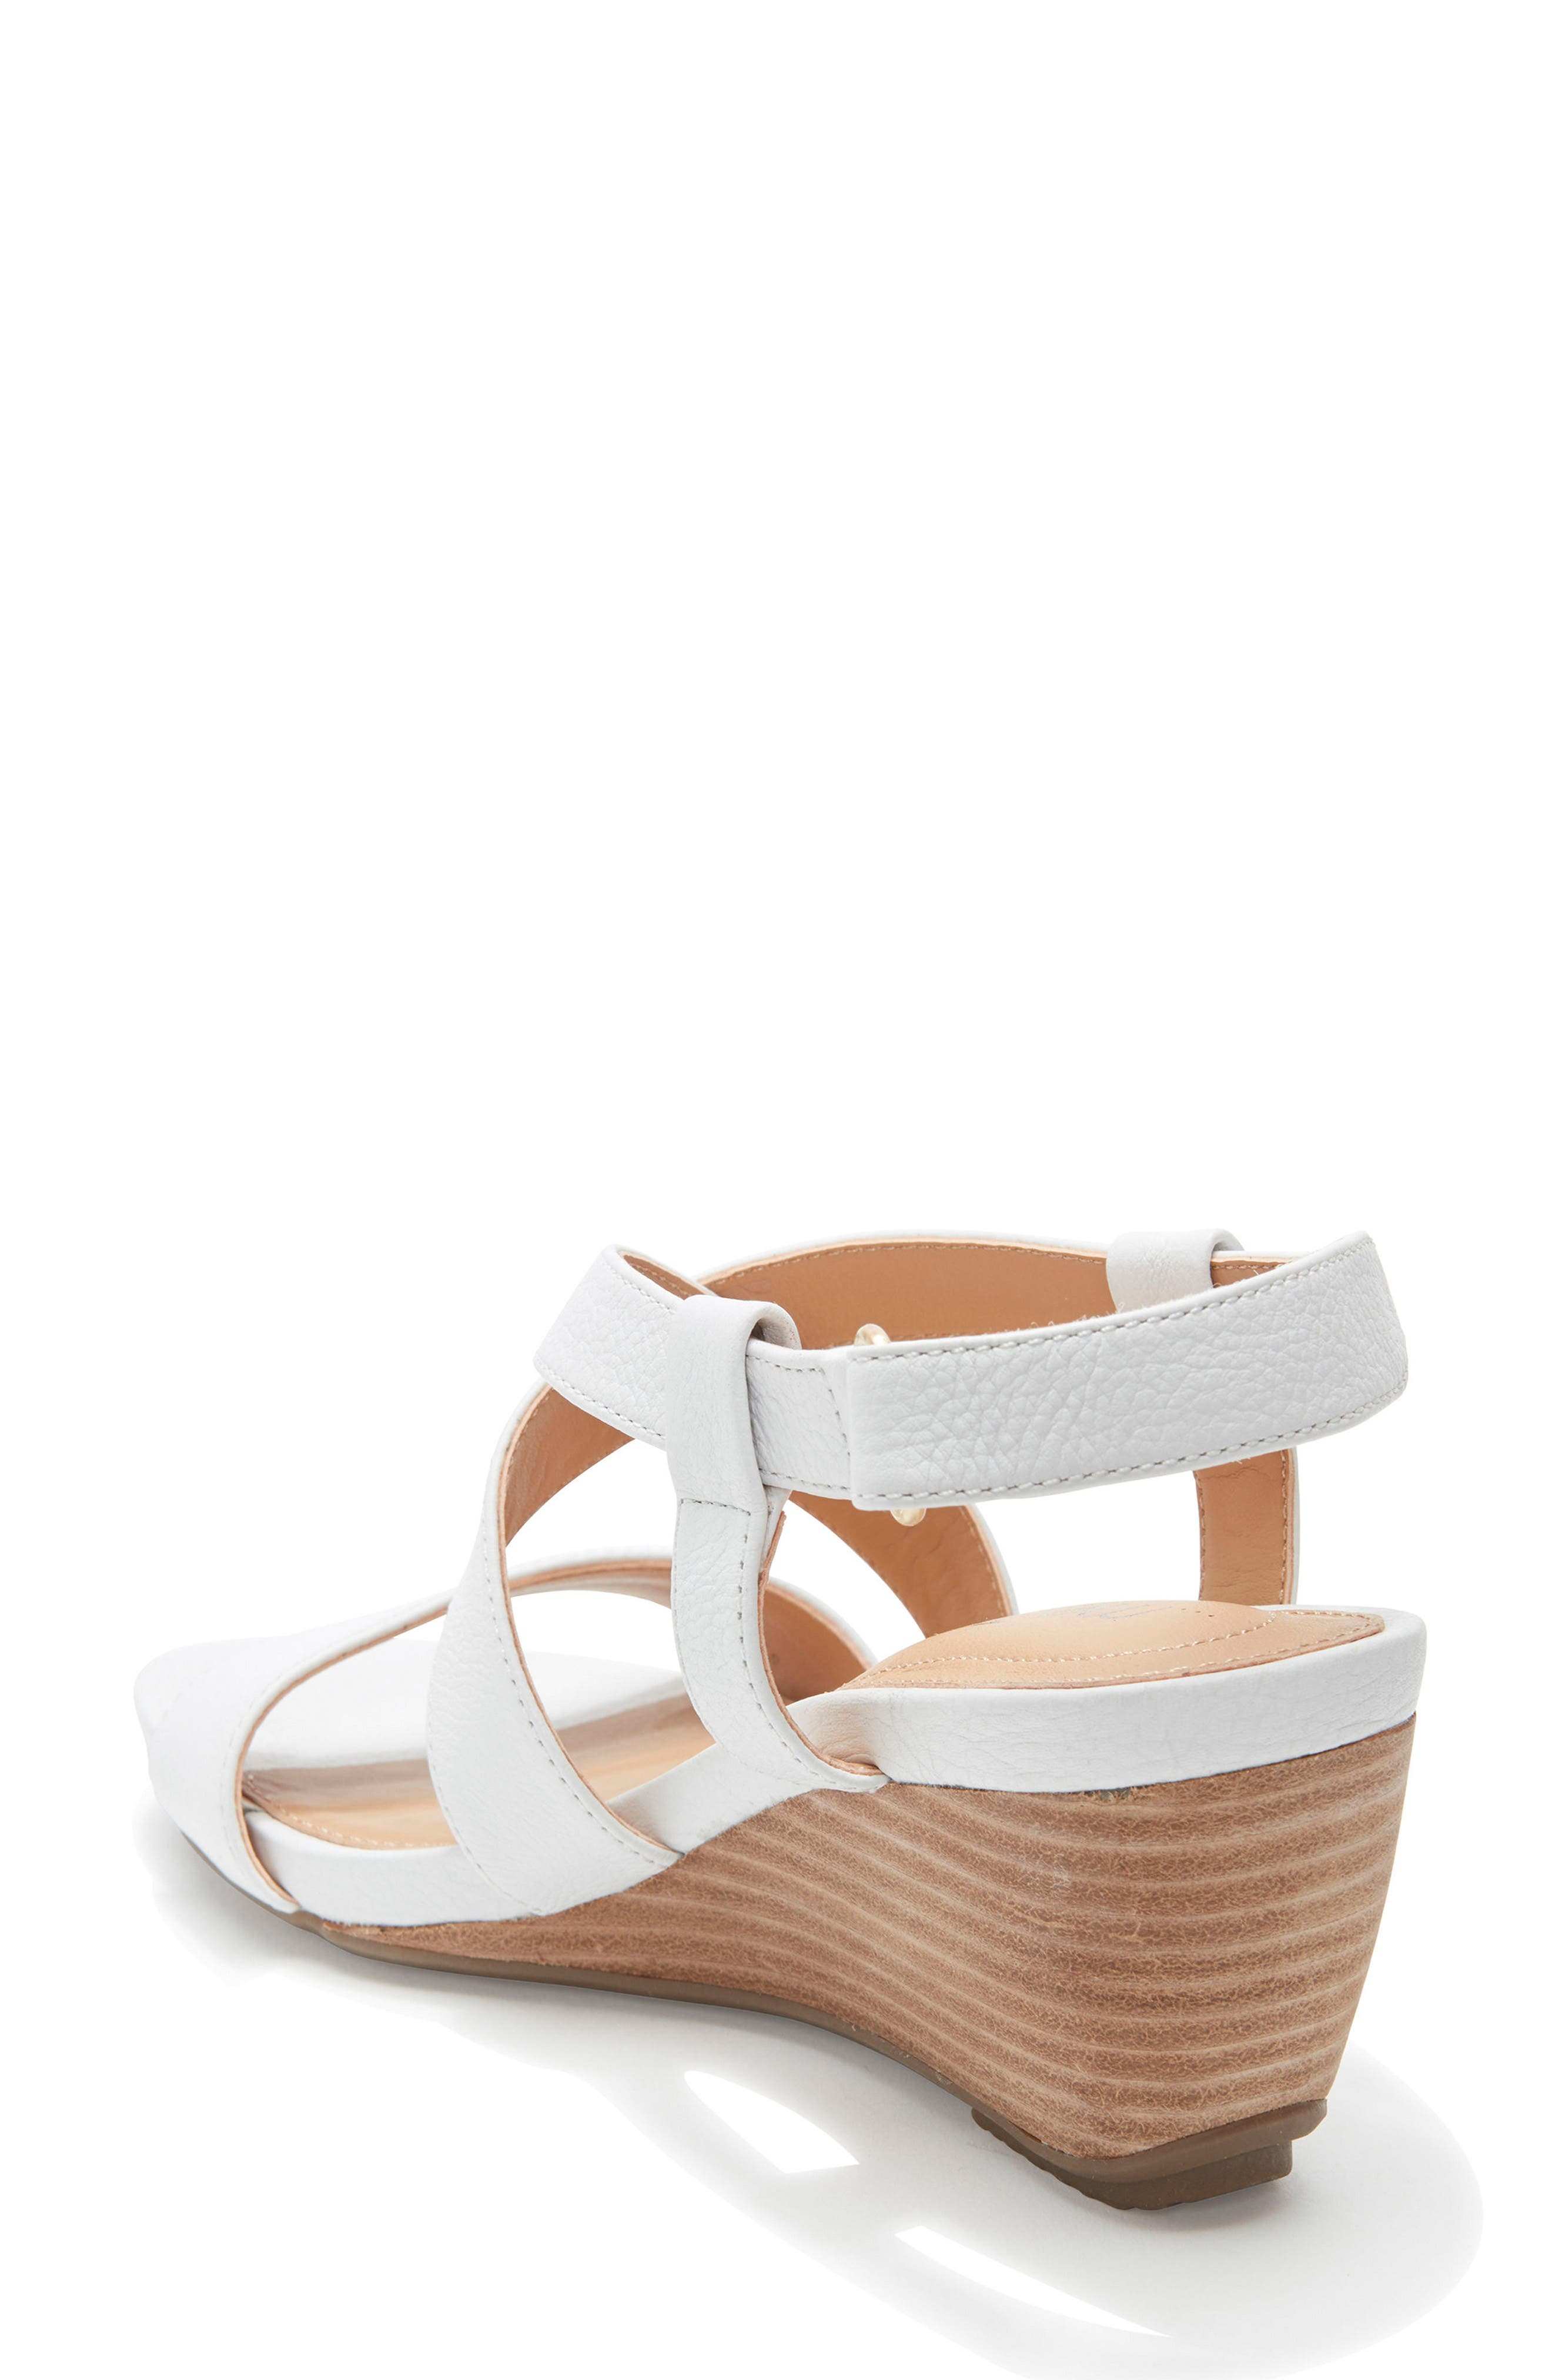 Payton Strappy Wedge,                             Alternate thumbnail 2, color,                             White Leather